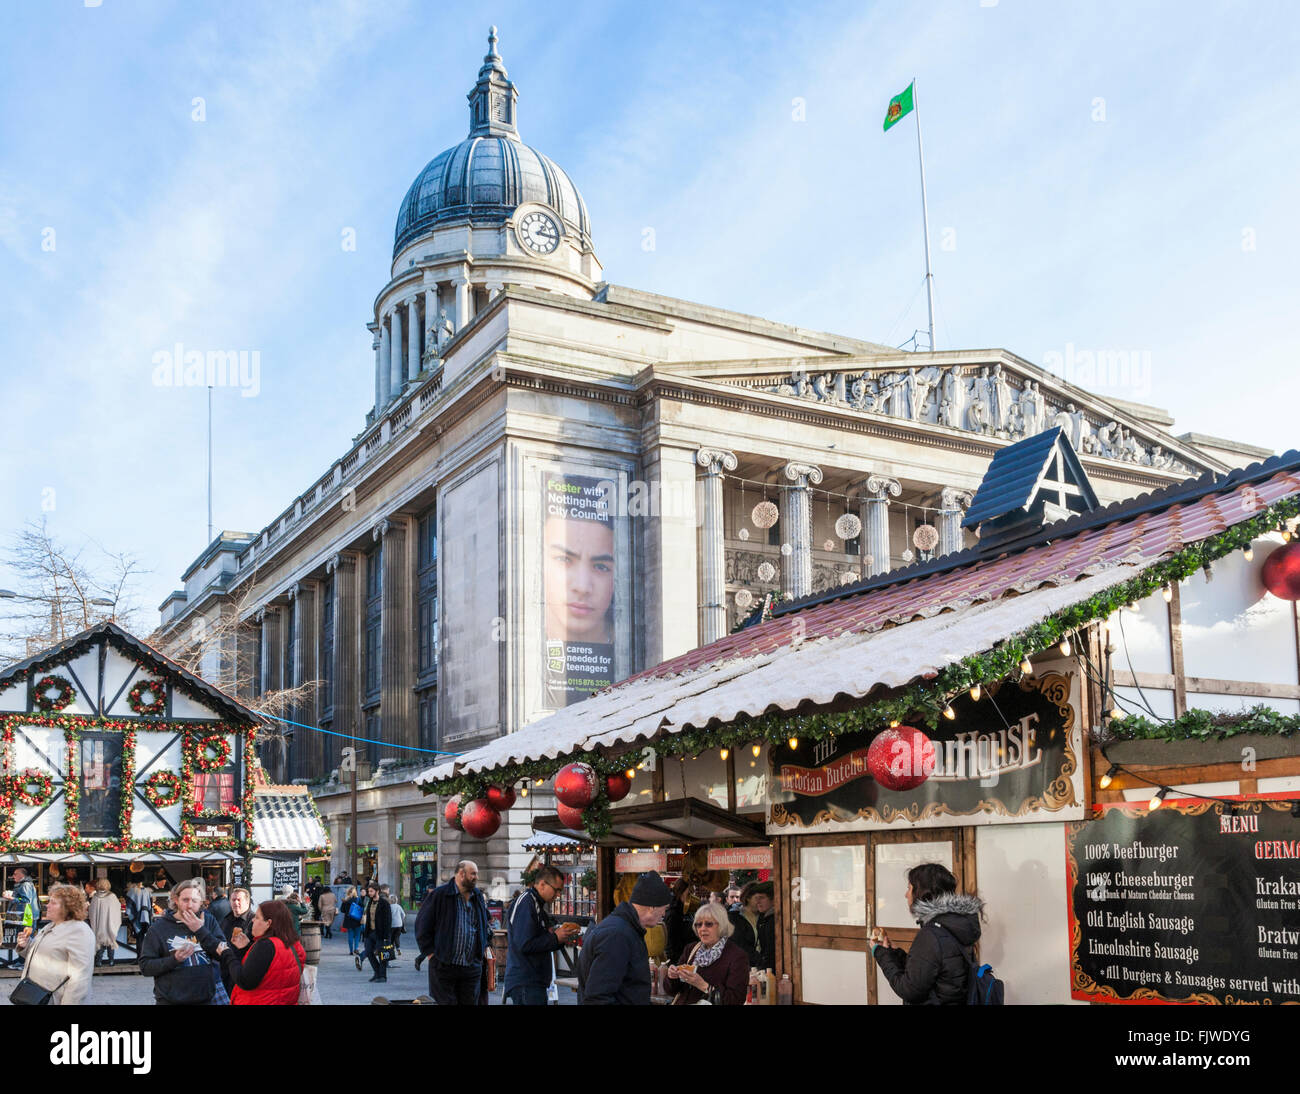 Christmas Market, Nottingham, England, UK - Stock Image